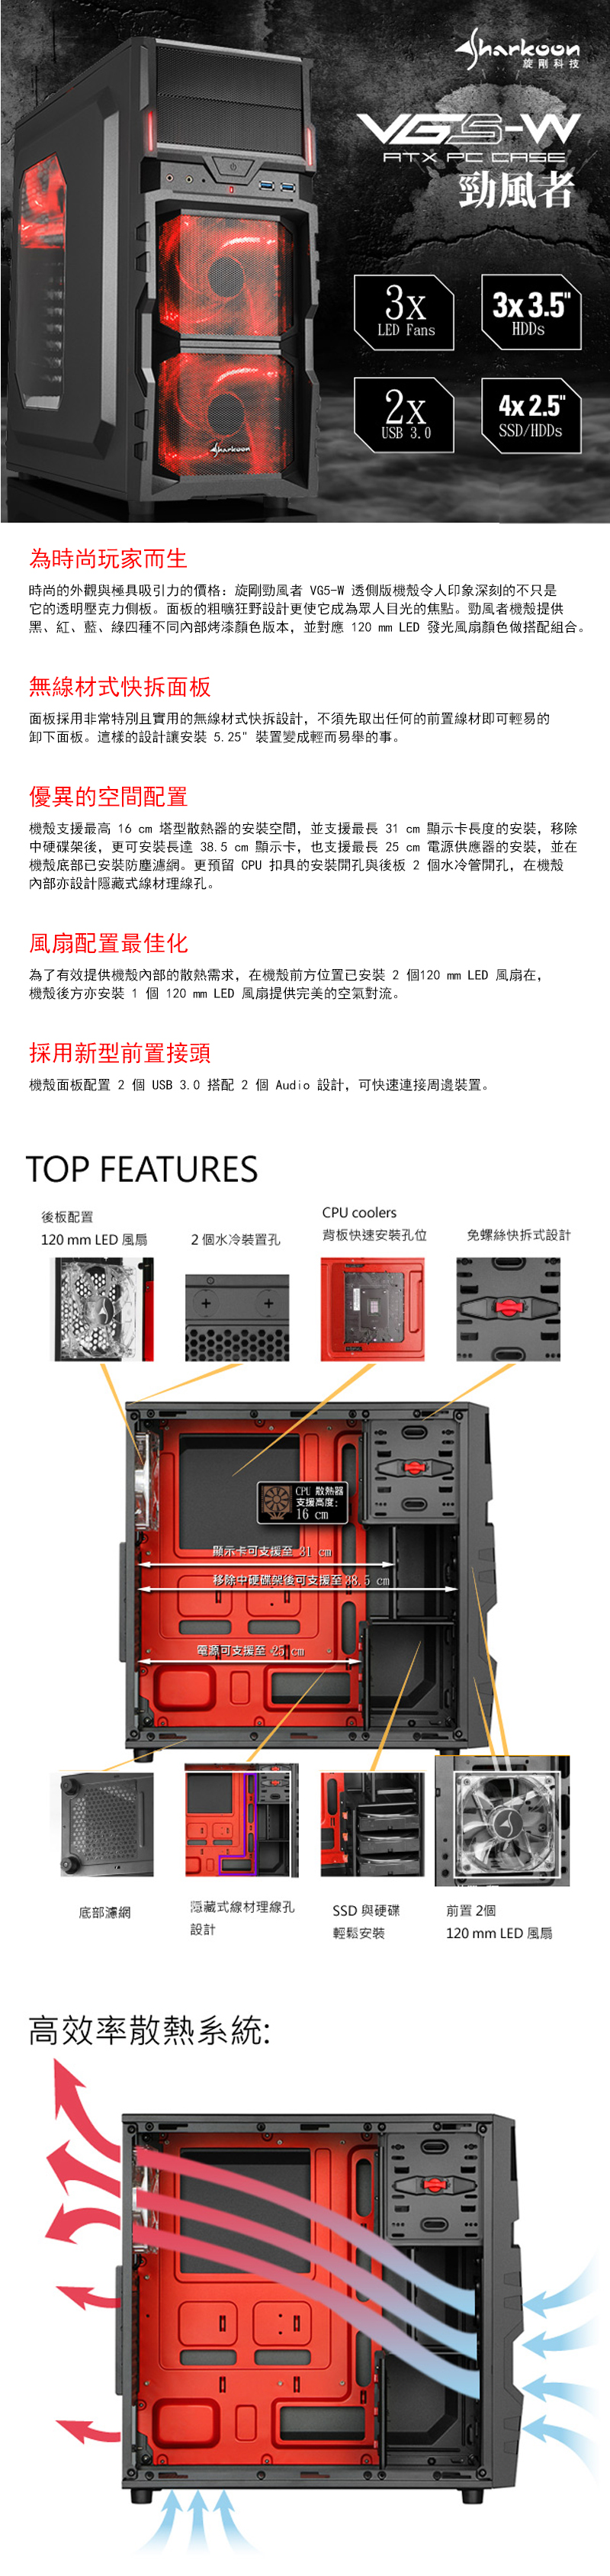 Index Of Case Sharkoon Dg7000 G Red Atx Vg5 W